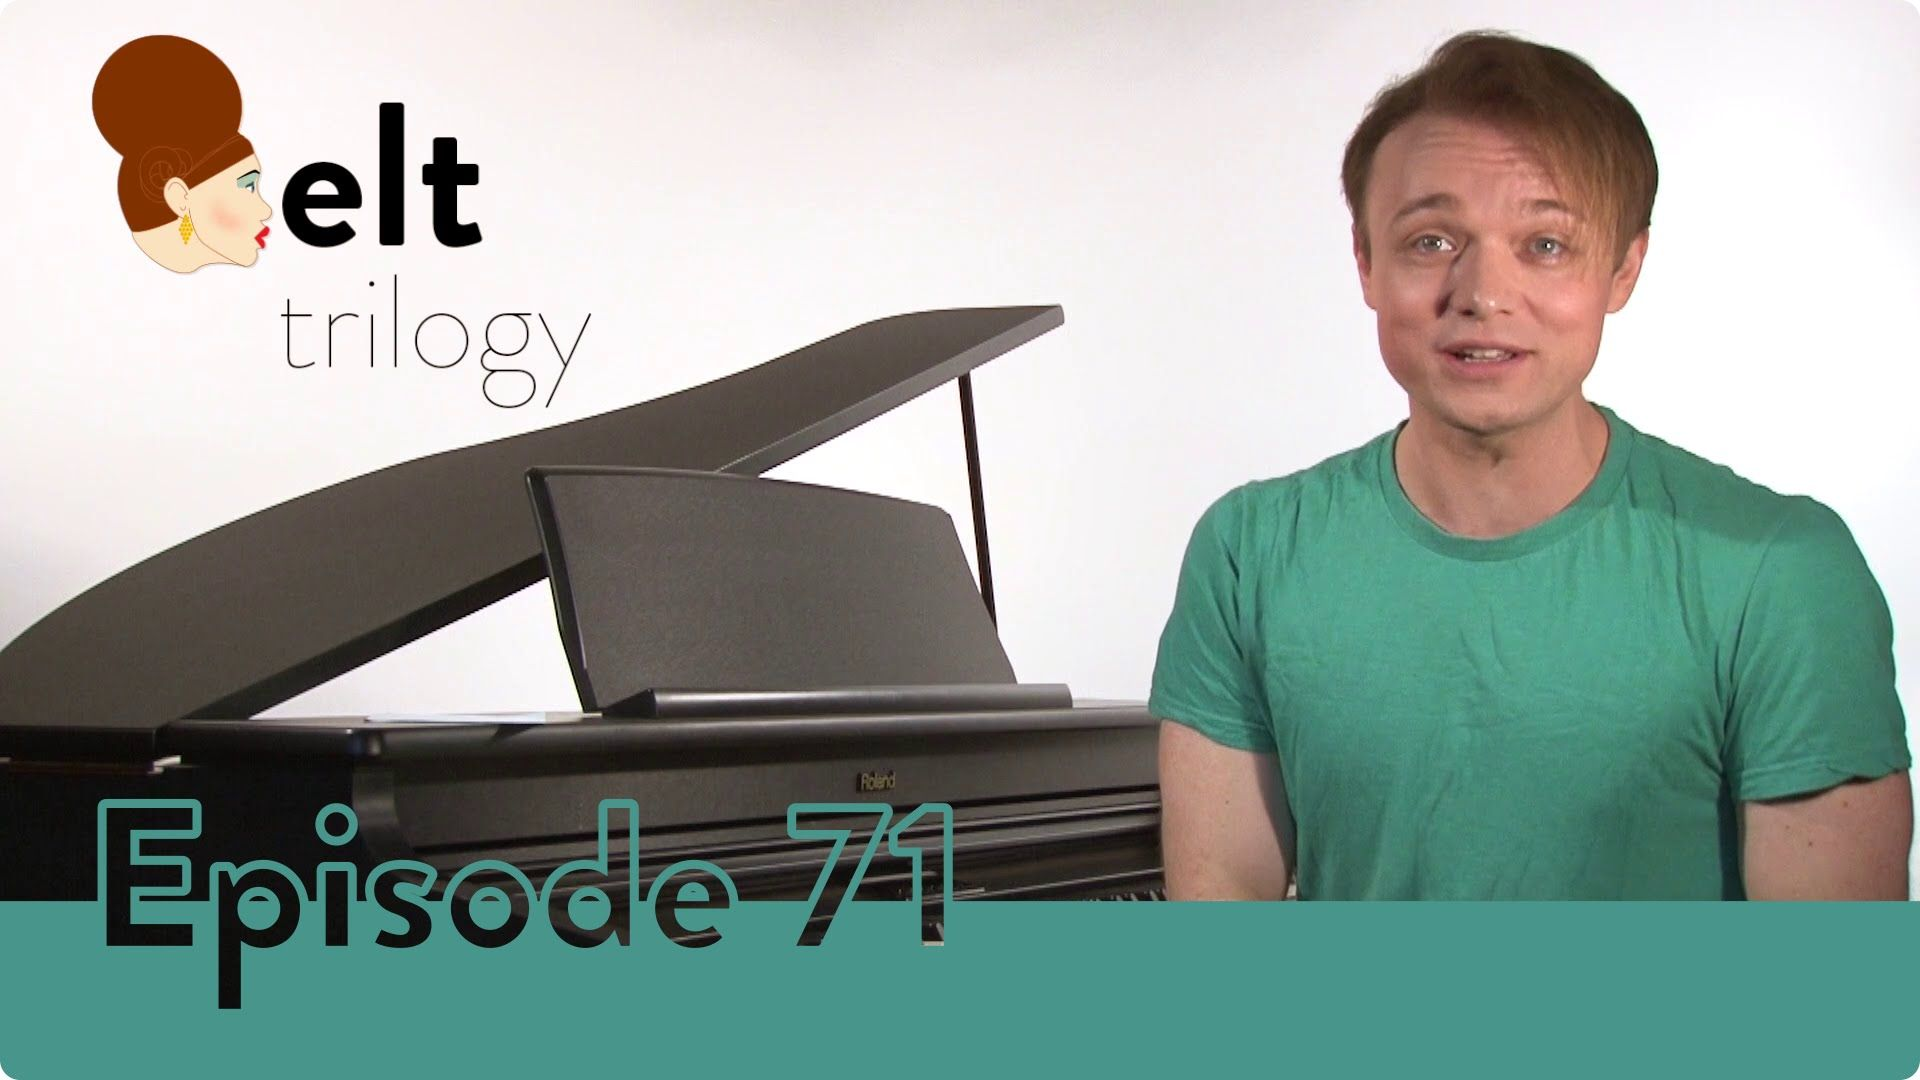 """Ep. 71 """"How To Belt Trilogy 2 Mixed High Notes"""" Want"""